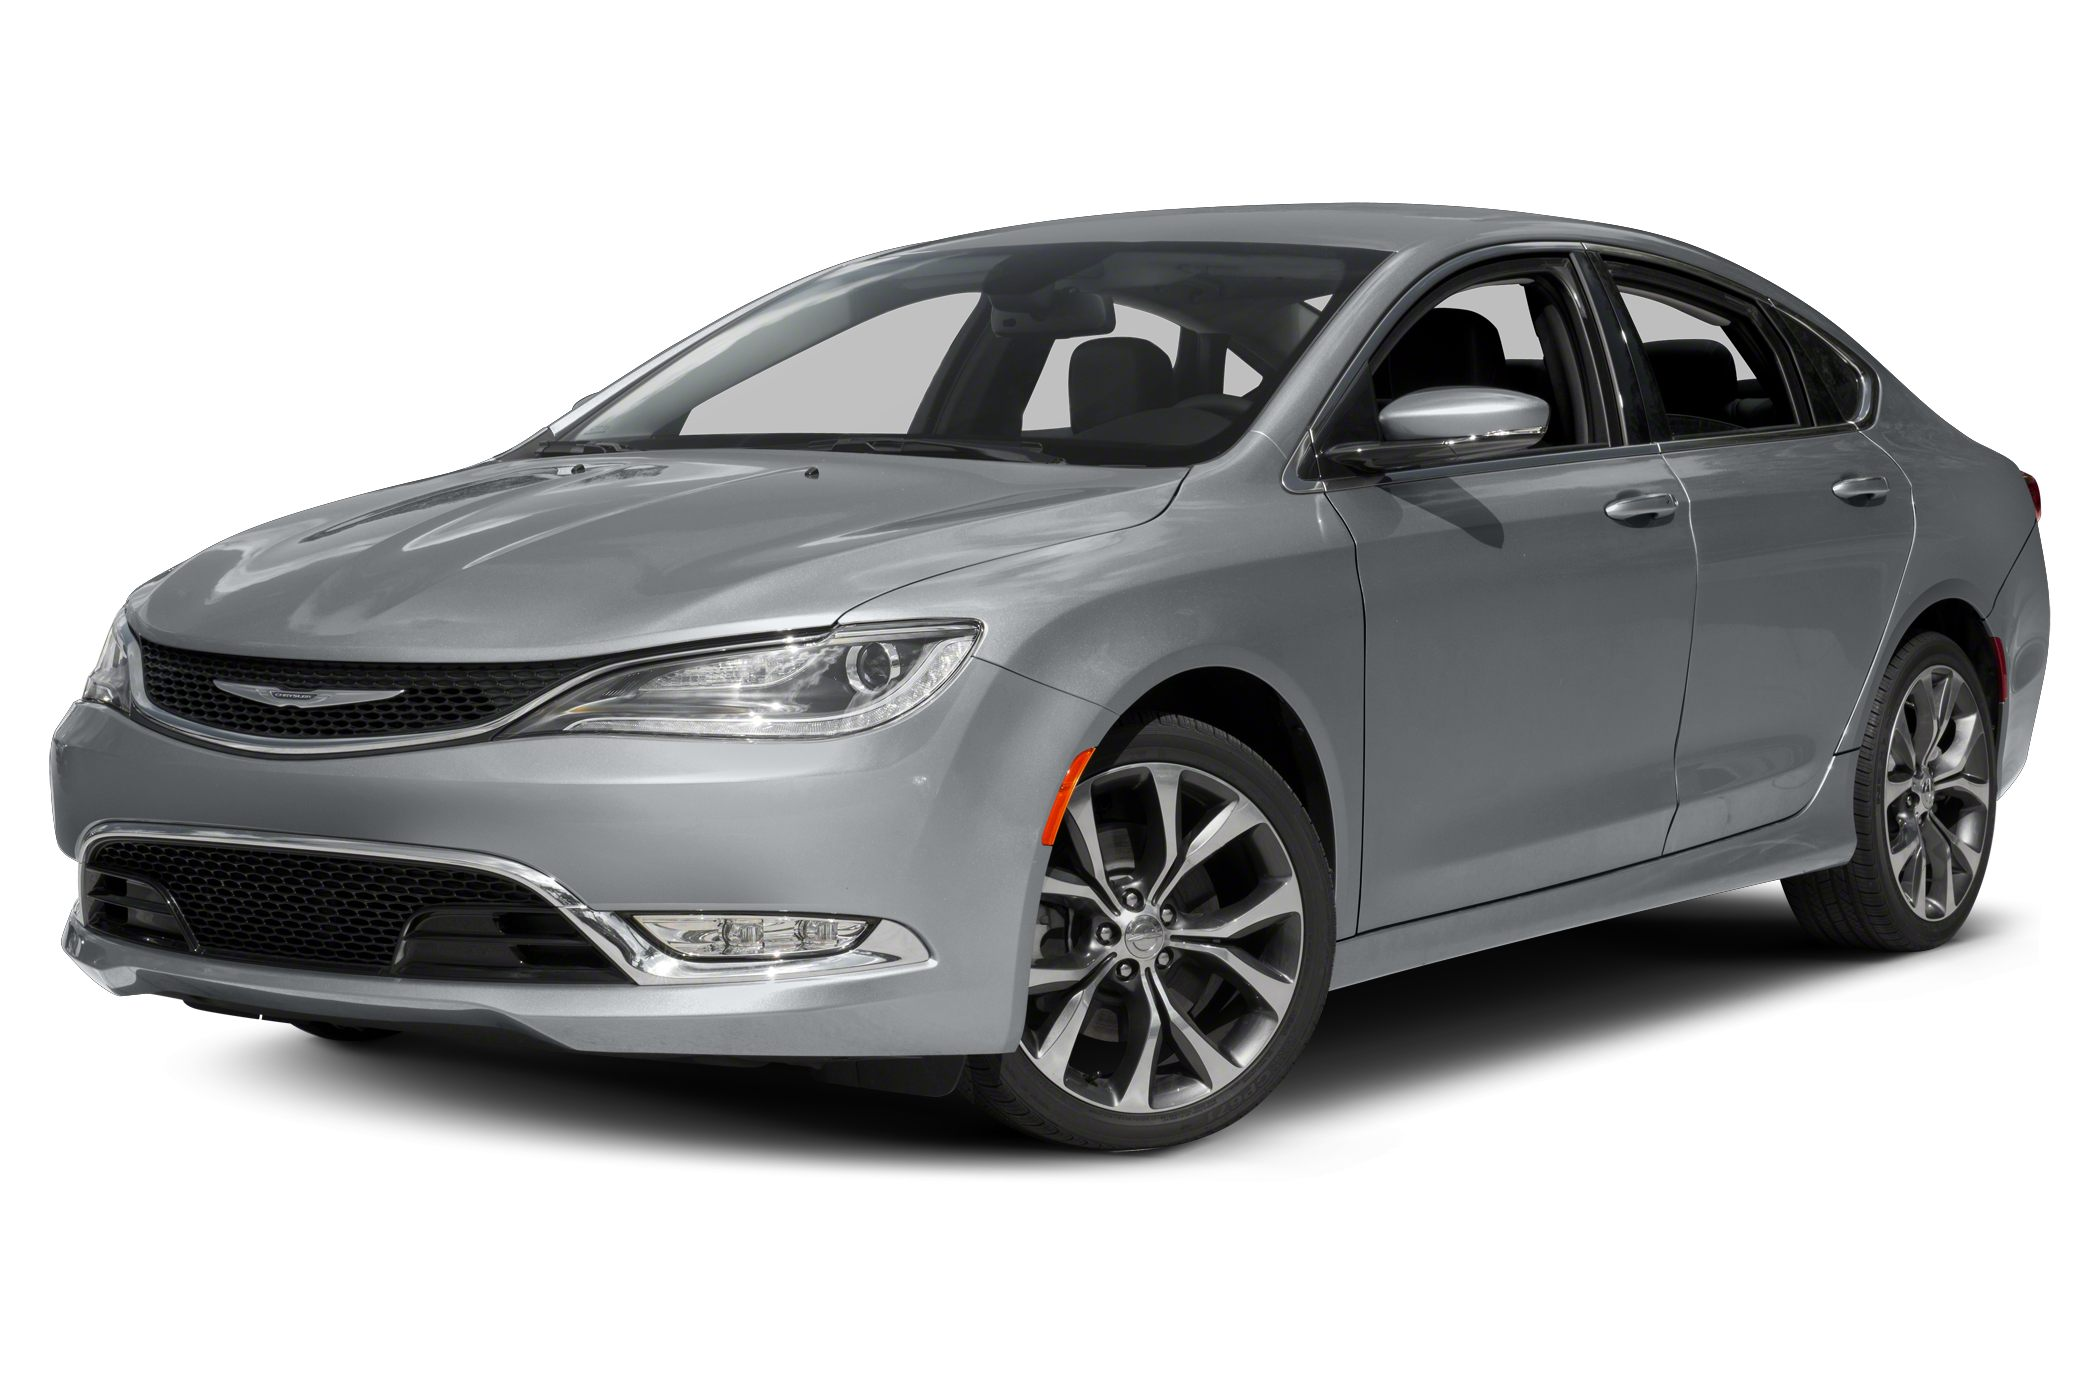 2015 Chrysler 200 C Vehicle Options 4WDAWD Electronic Brake Assistance Second Row Folding Seat AB